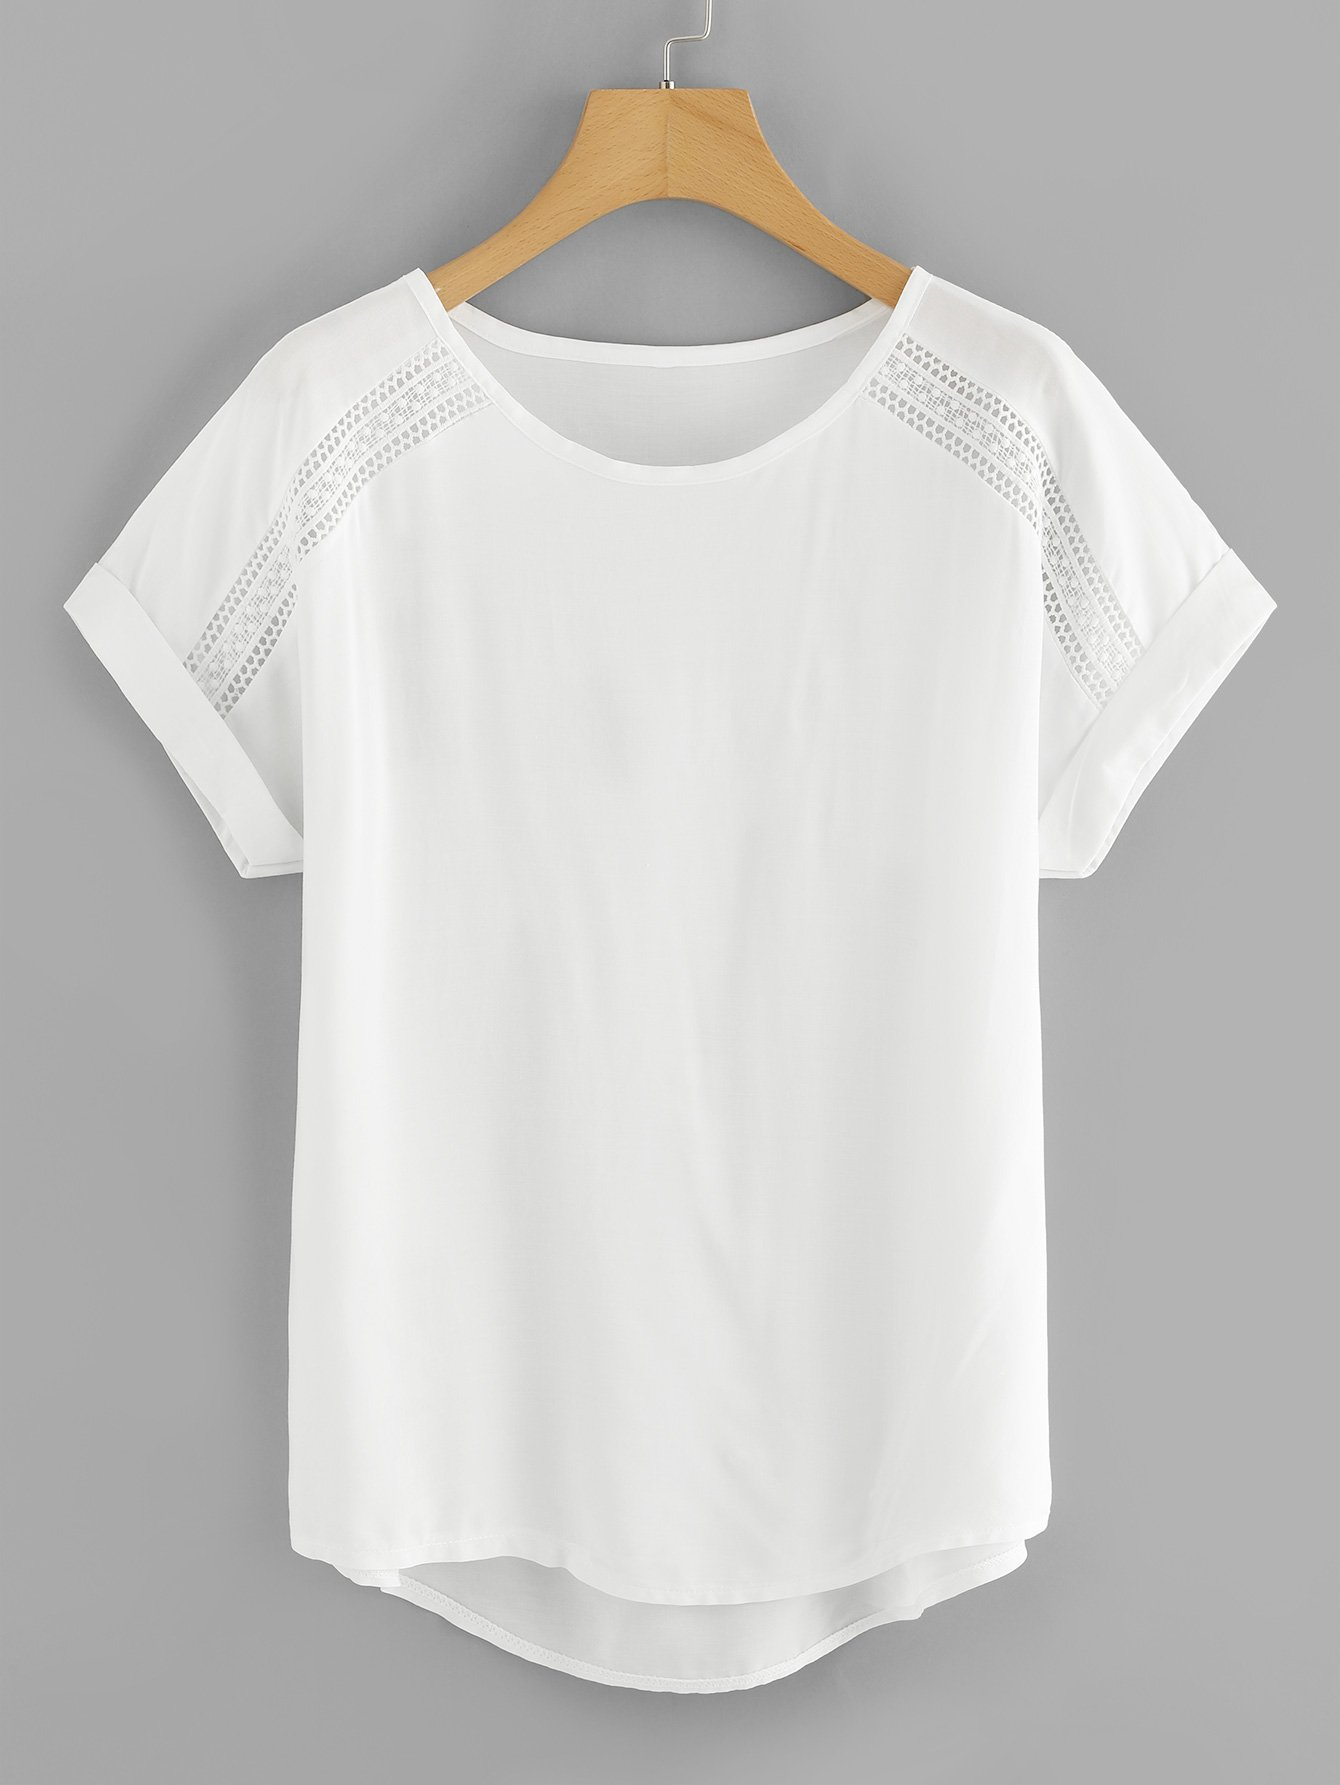 Roll Up Sleeve High Low Tee long sleeve high low lace insert tee